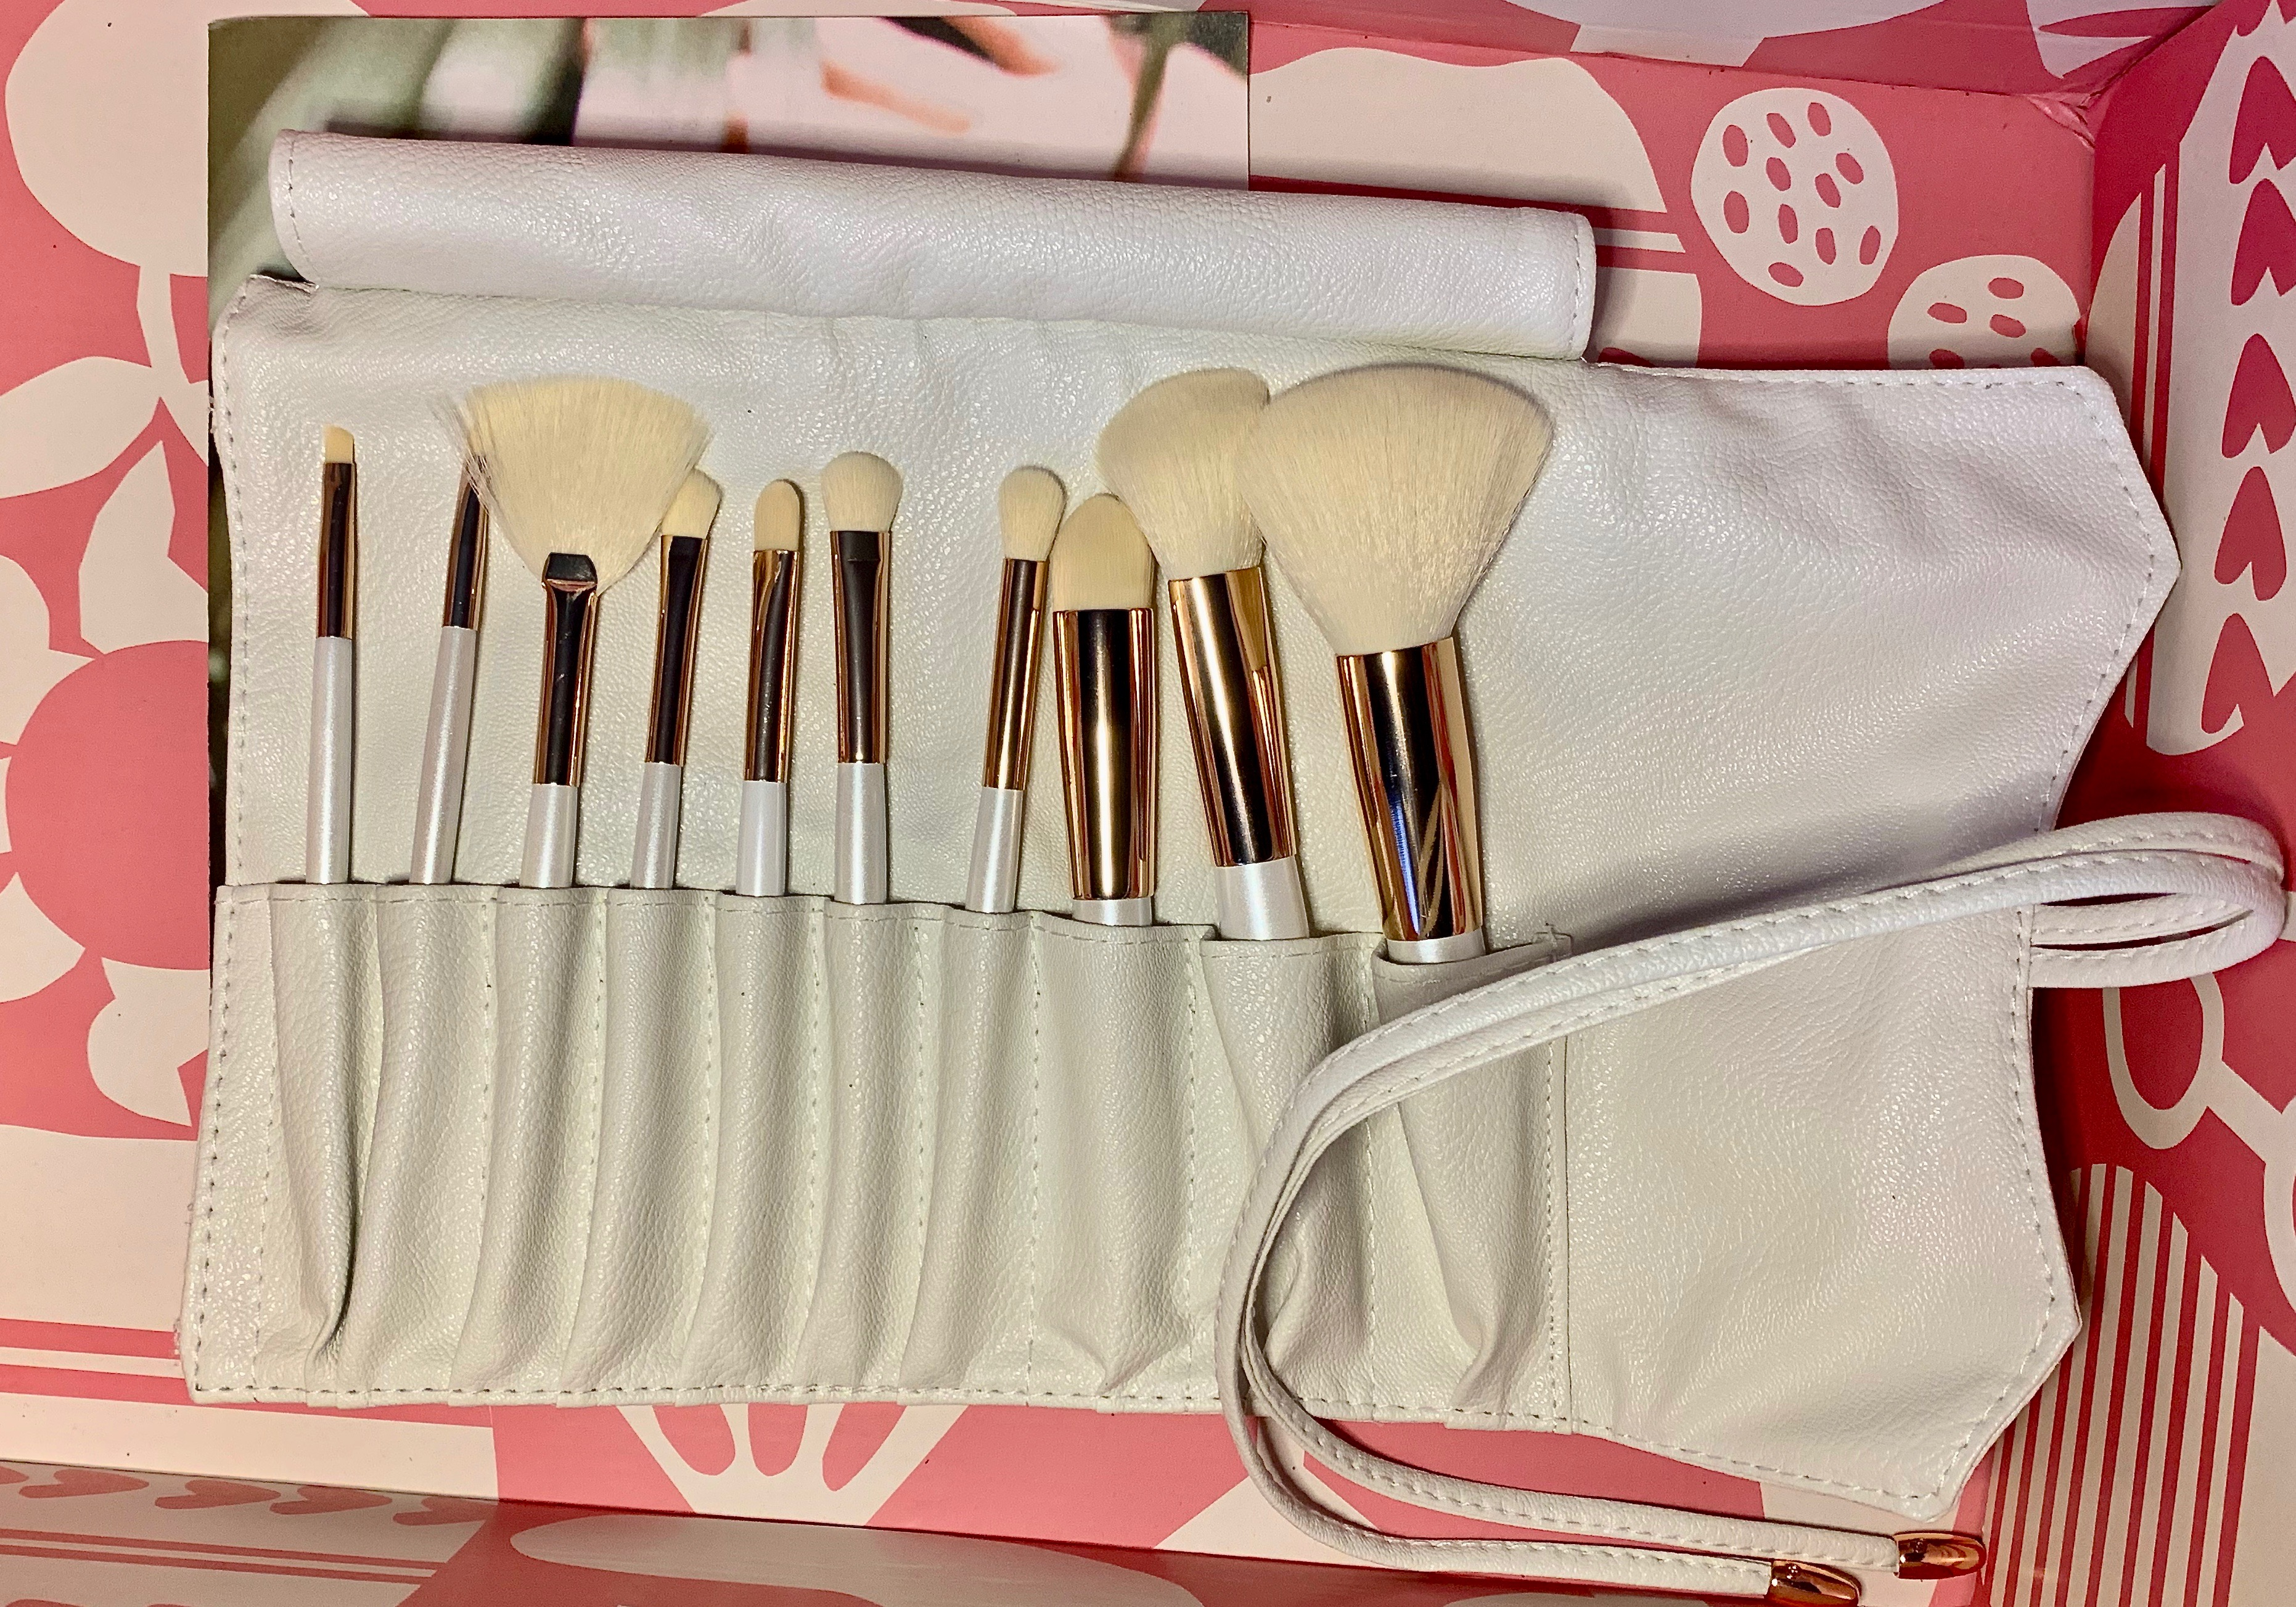 CAUSEBOX SUMMER INTRO BOX 3 - La Beauté Soi Makeup Brush Collection